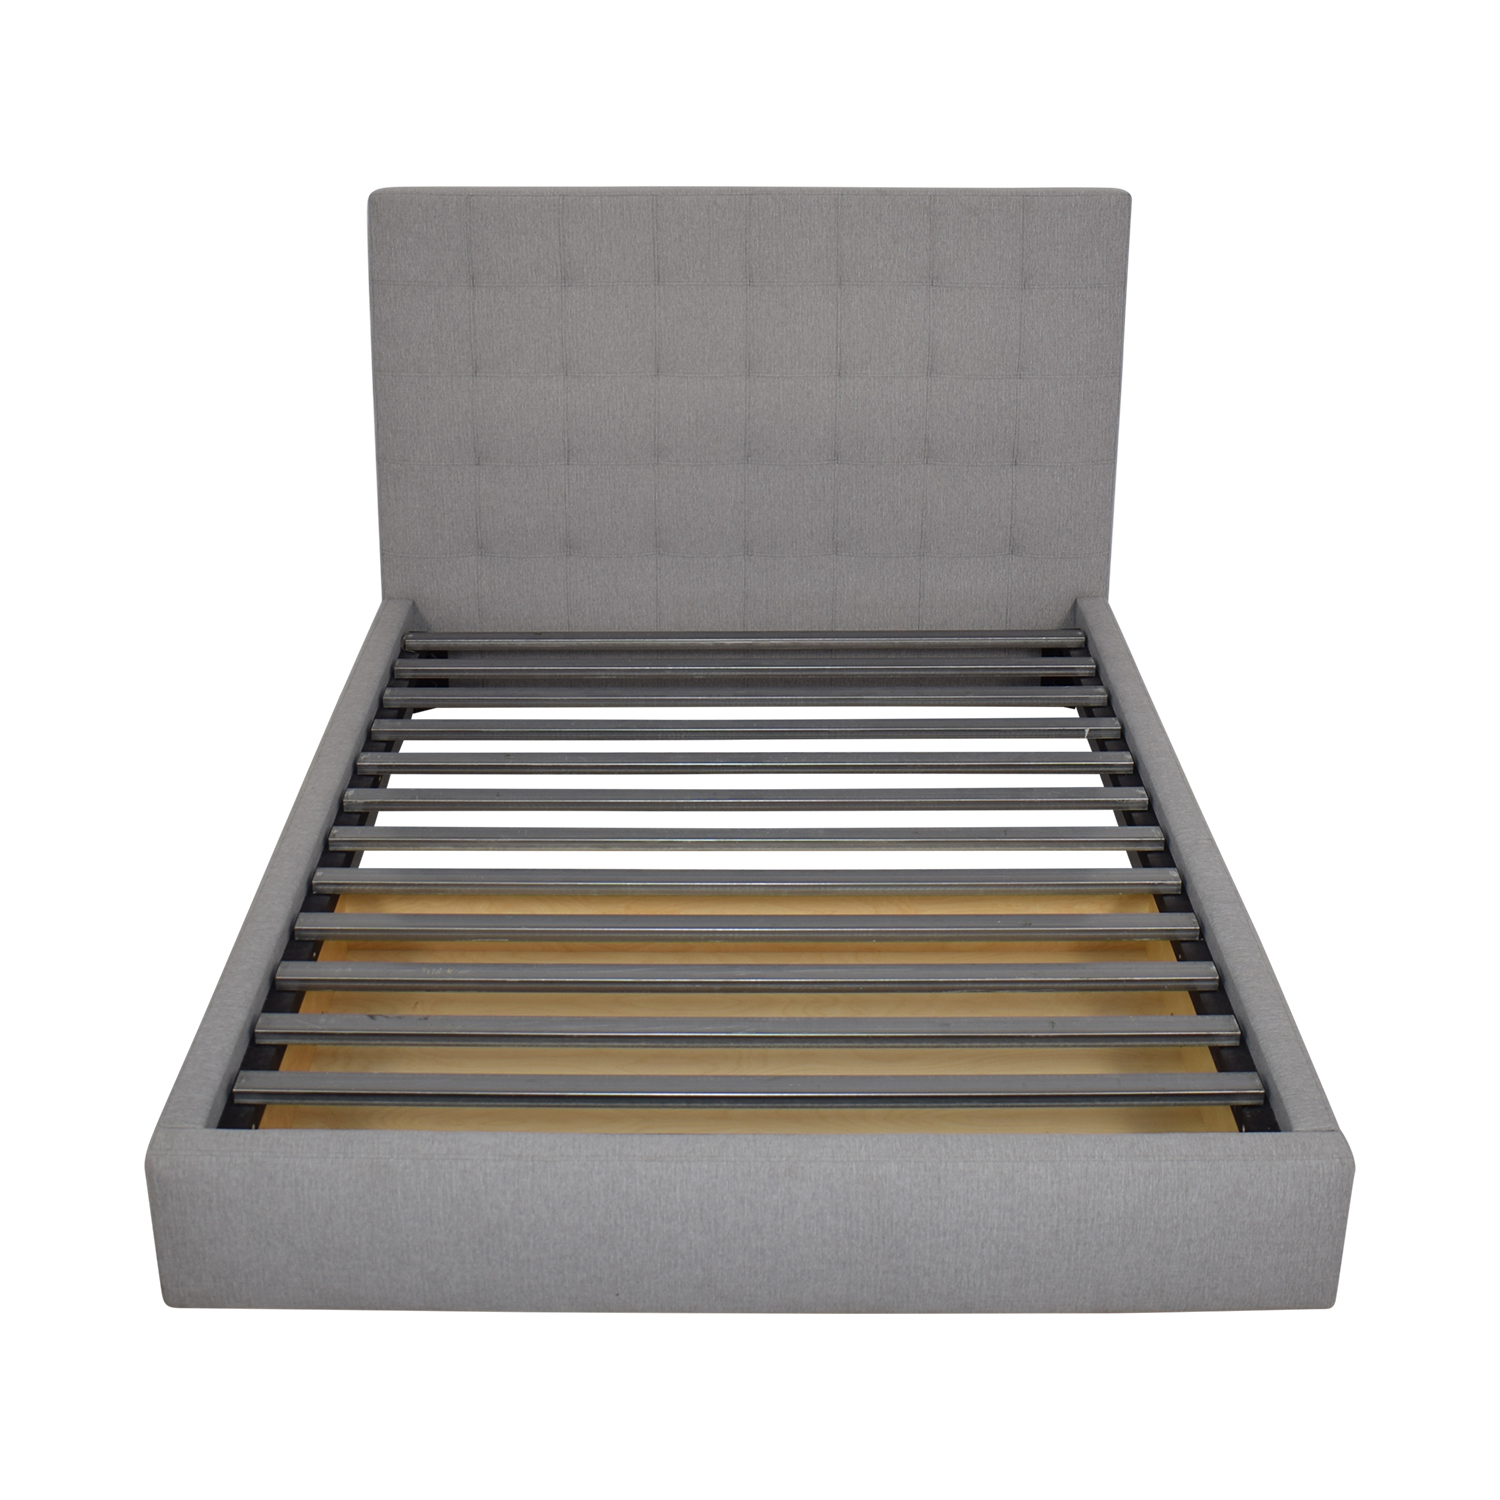 Room & Board Avery Upholstered Bed with Storage Drawer sale